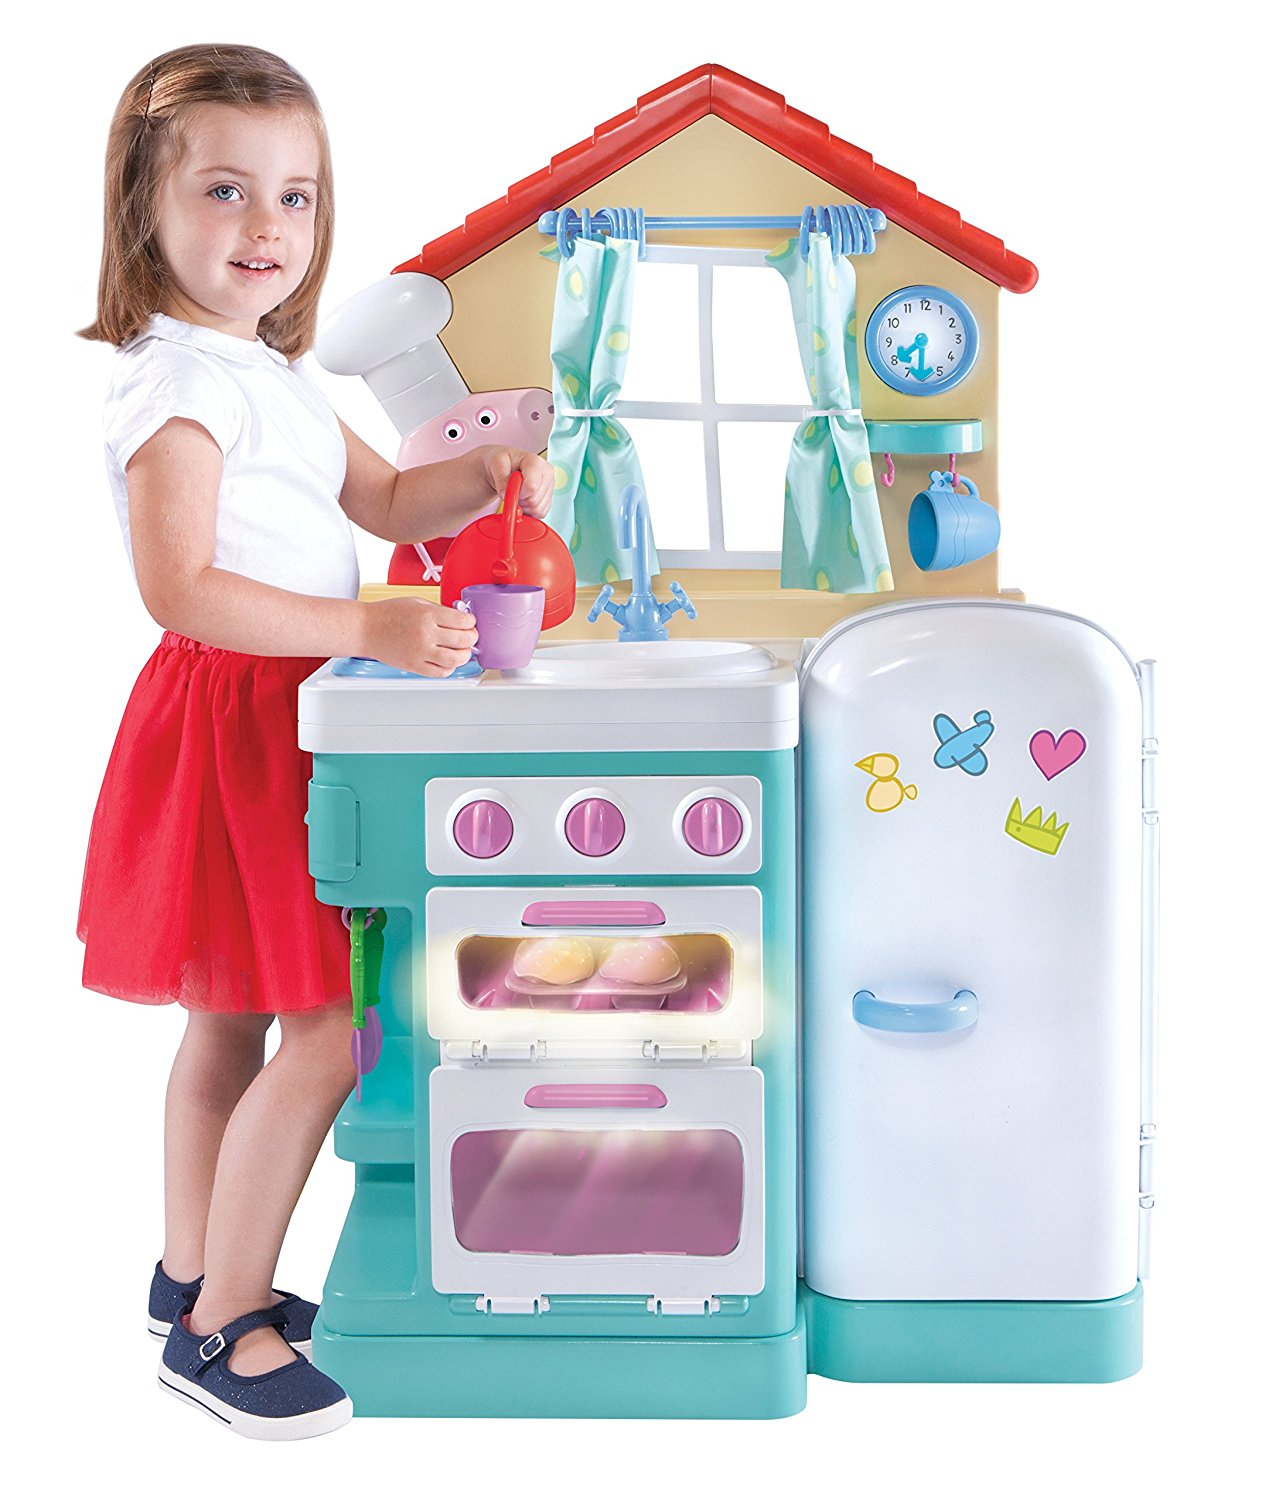 Peppa Pig Giggle & Bake Kitchen ONLY $46.45 Shipped (Reg